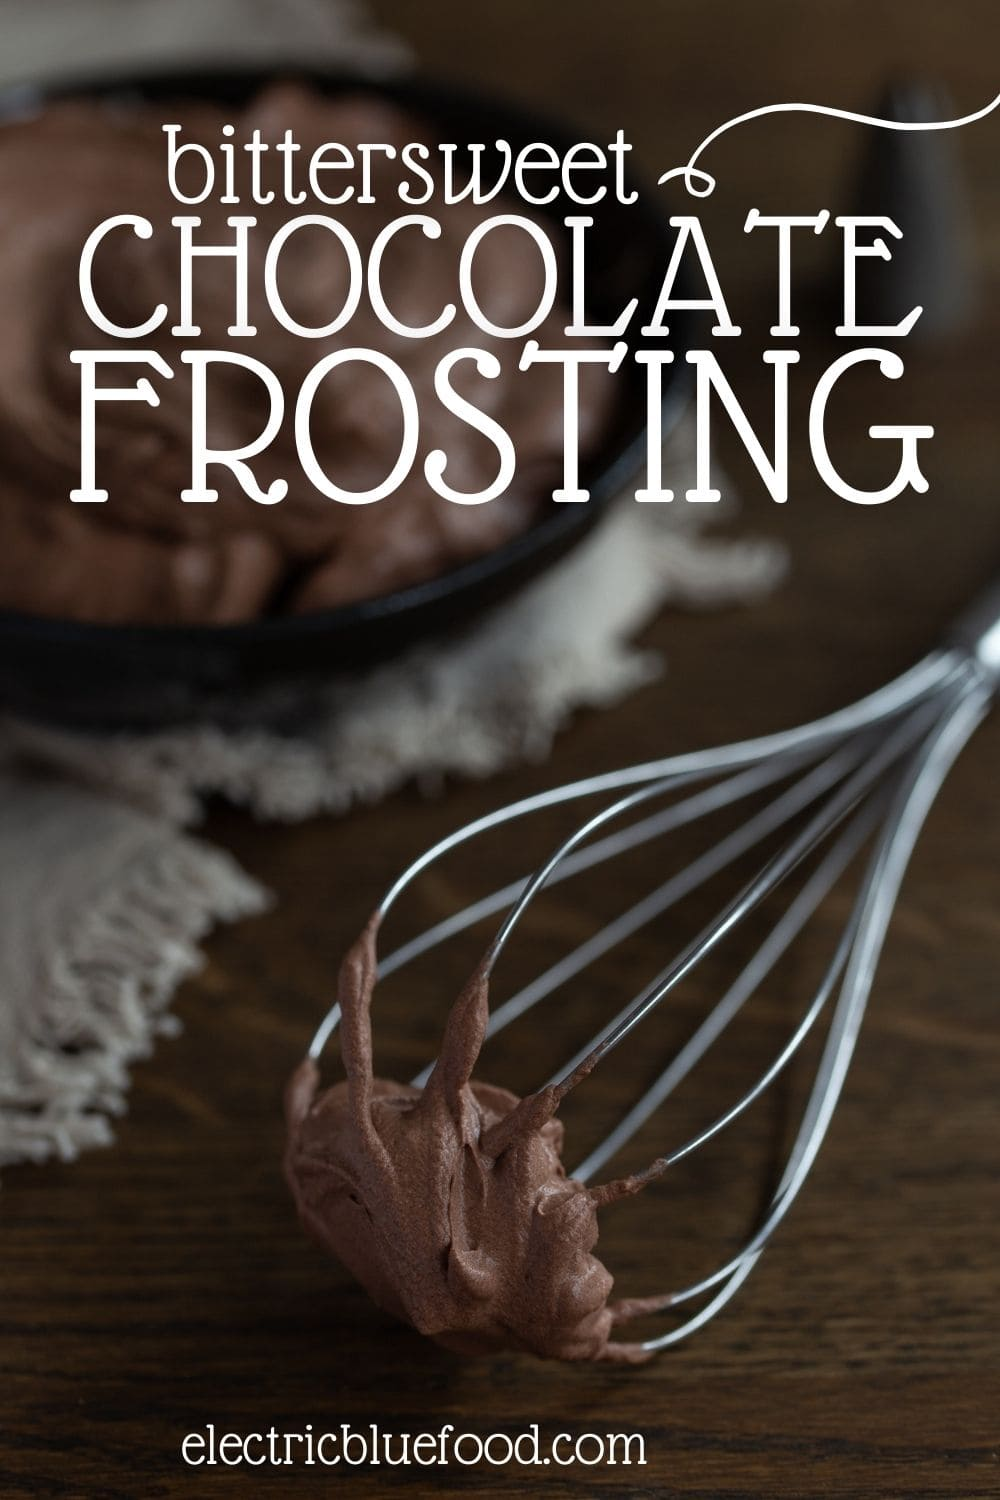 This bittersweet chocolate frosting made with whipped cream is a thick and airy frosting that is not too sweet, perfectly delivering the flavour of cocoa. Great to pair with very sweet cakes to tame their sweetness, or with chocolate desserts, to up the chocolate flavour!